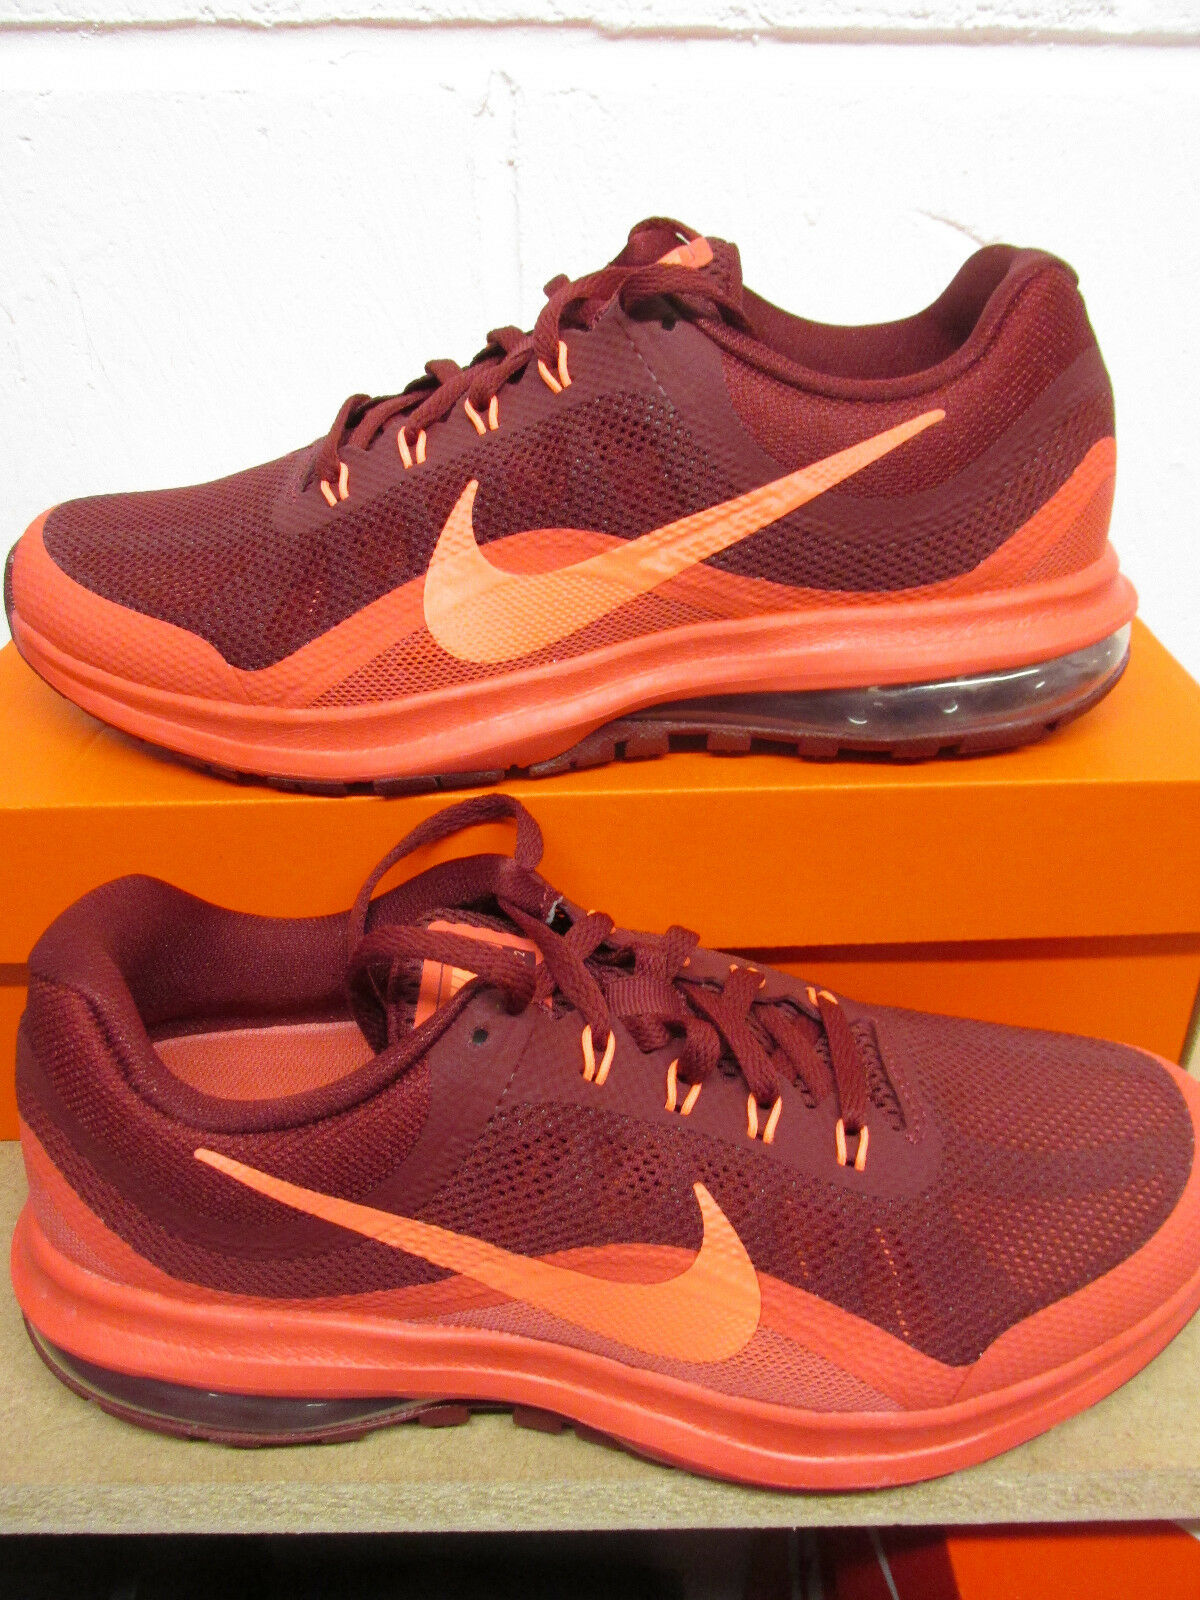 2f0e3e2a214 Nike Air Max Dynasty 2 Mens 852430 600 600 600 Running Trainers Sneakers  Shoes d51183